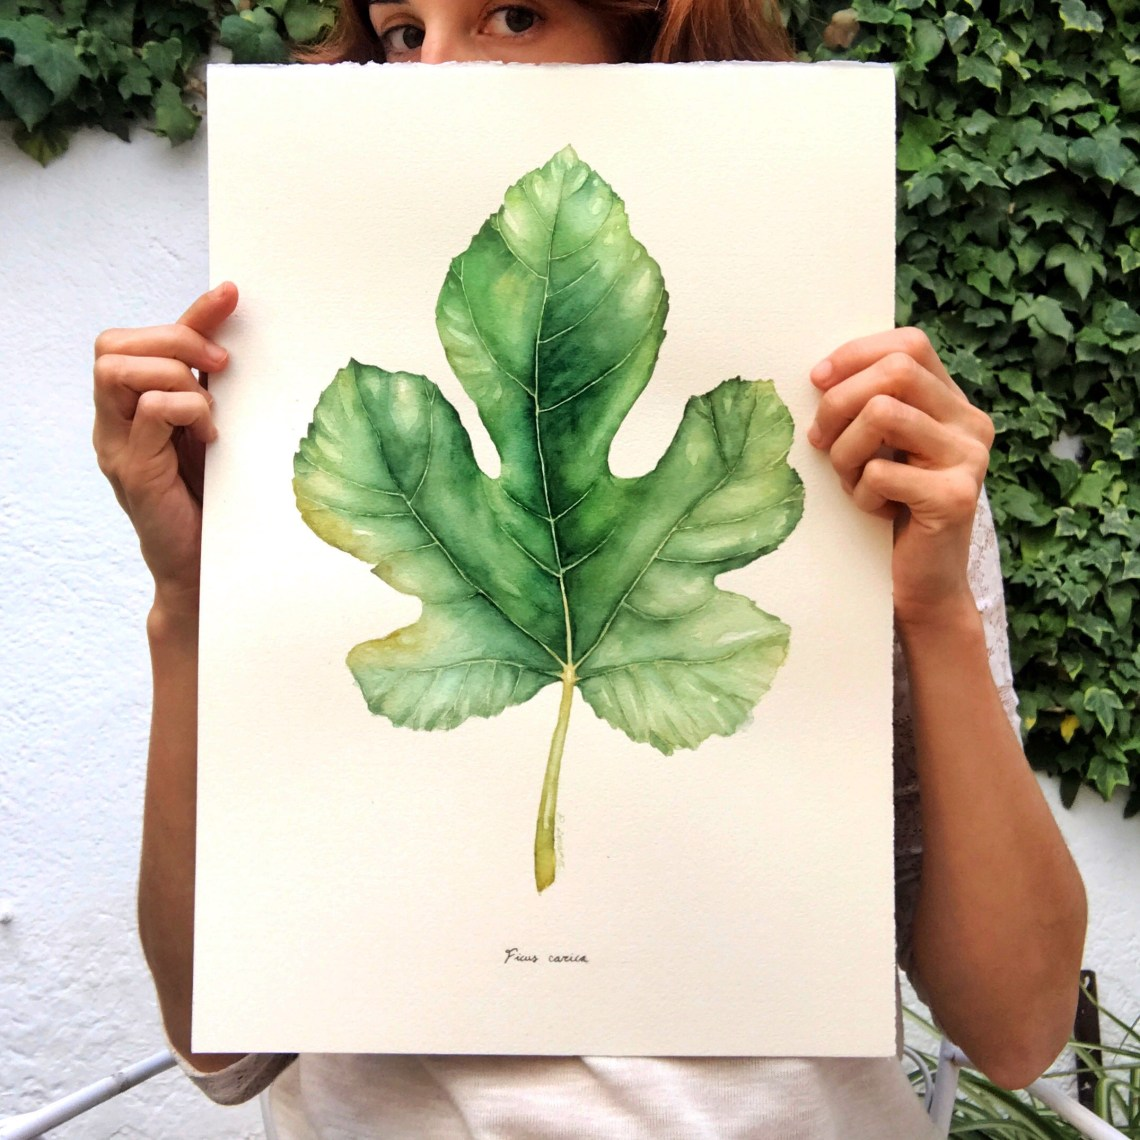 photo of lozano holding a piece of her watercolour art